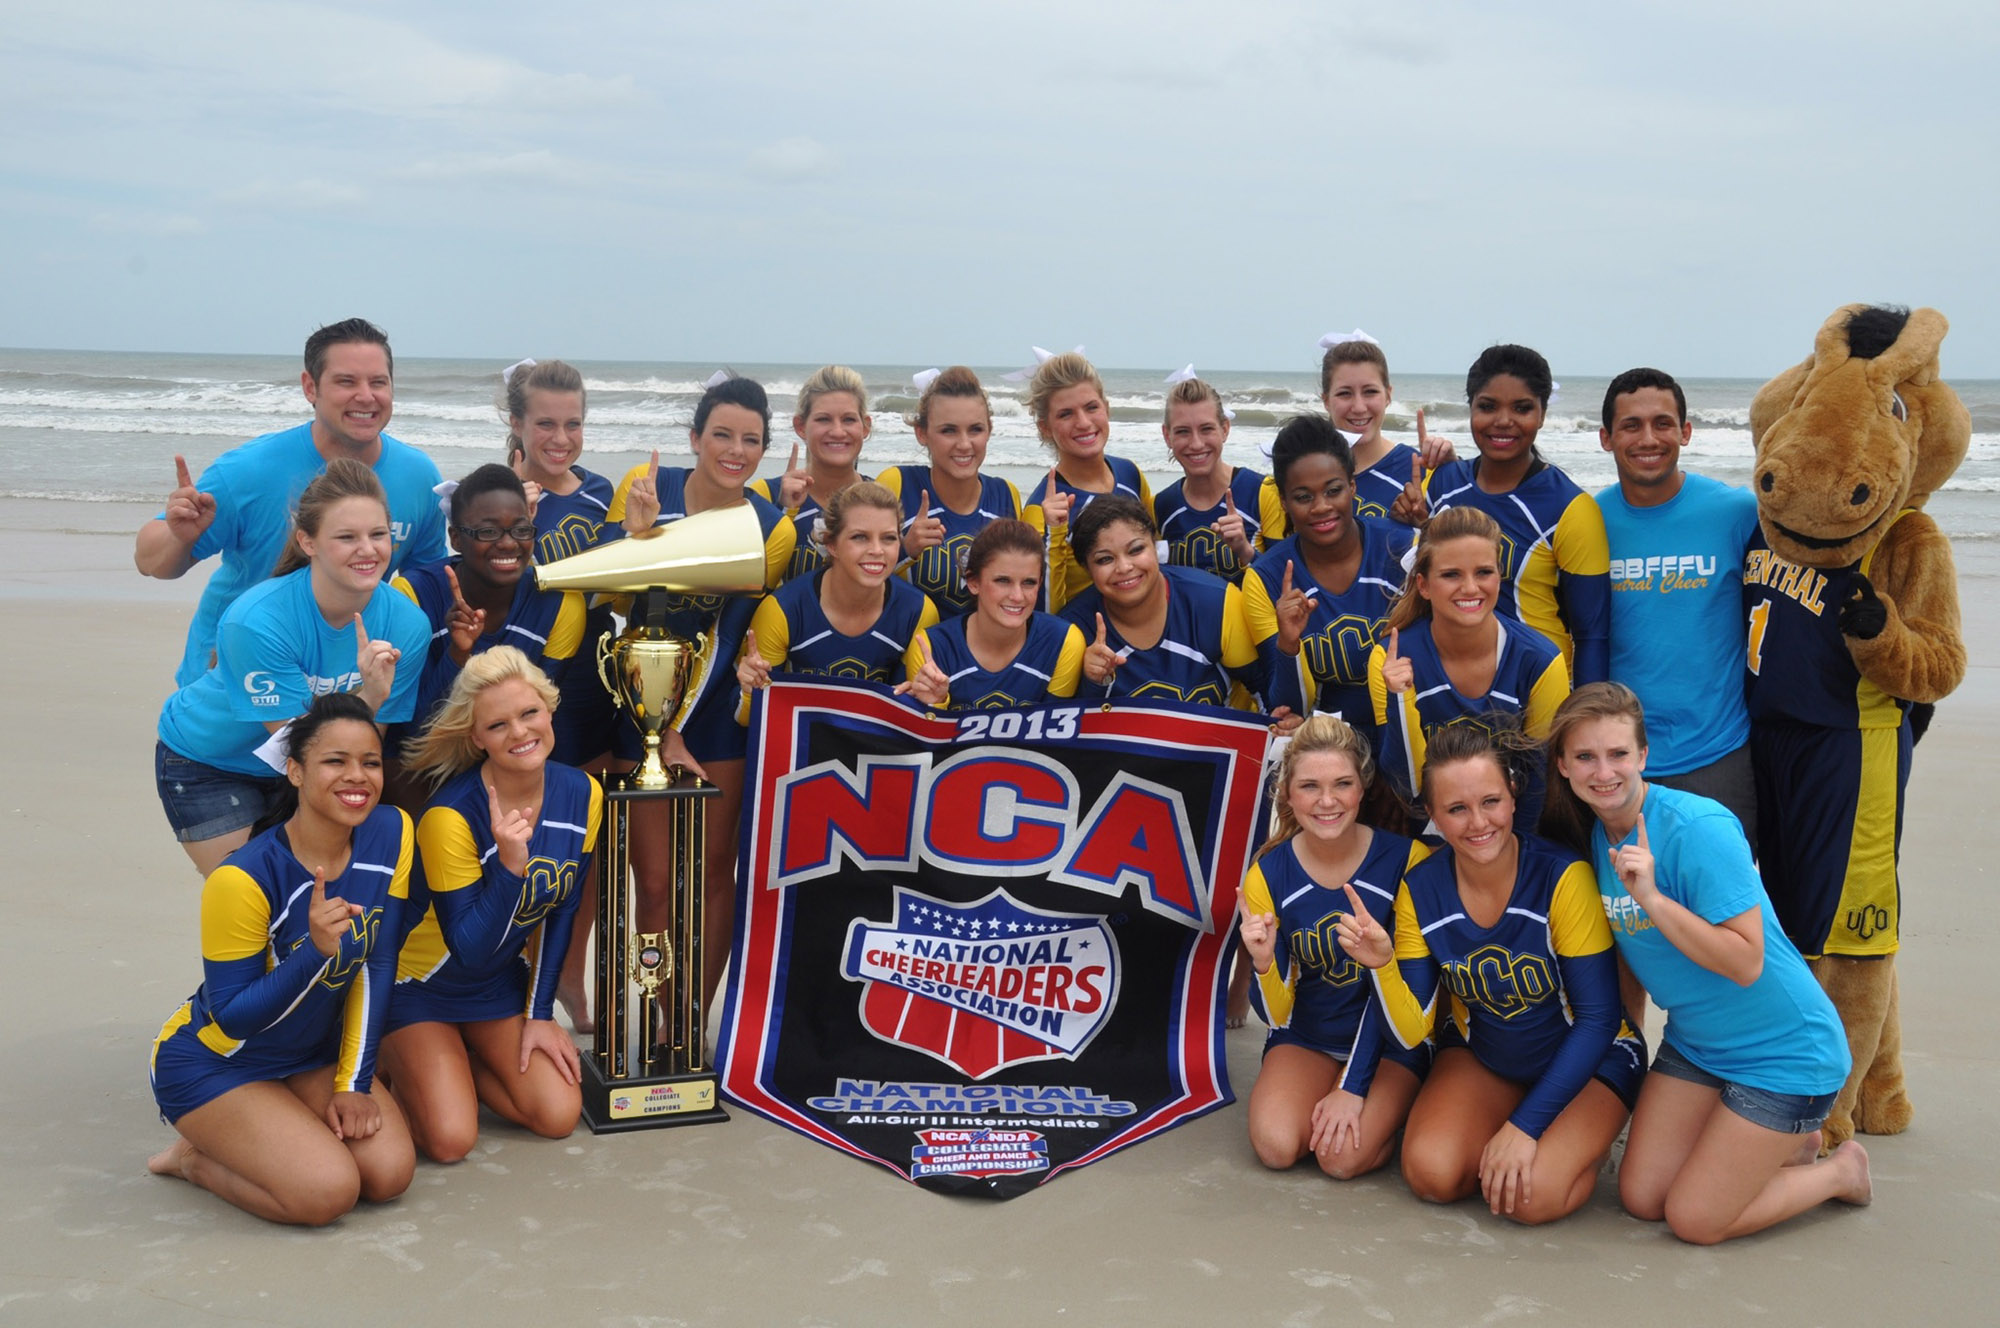 The University of Central Oklahoma all-girls and stunt squads placed first at the 2013 National Cheer Association/National Dance Association Collegiate Championships, held April 10-14 in Daytona Beach, Fla., with Central's pom squad placing third.